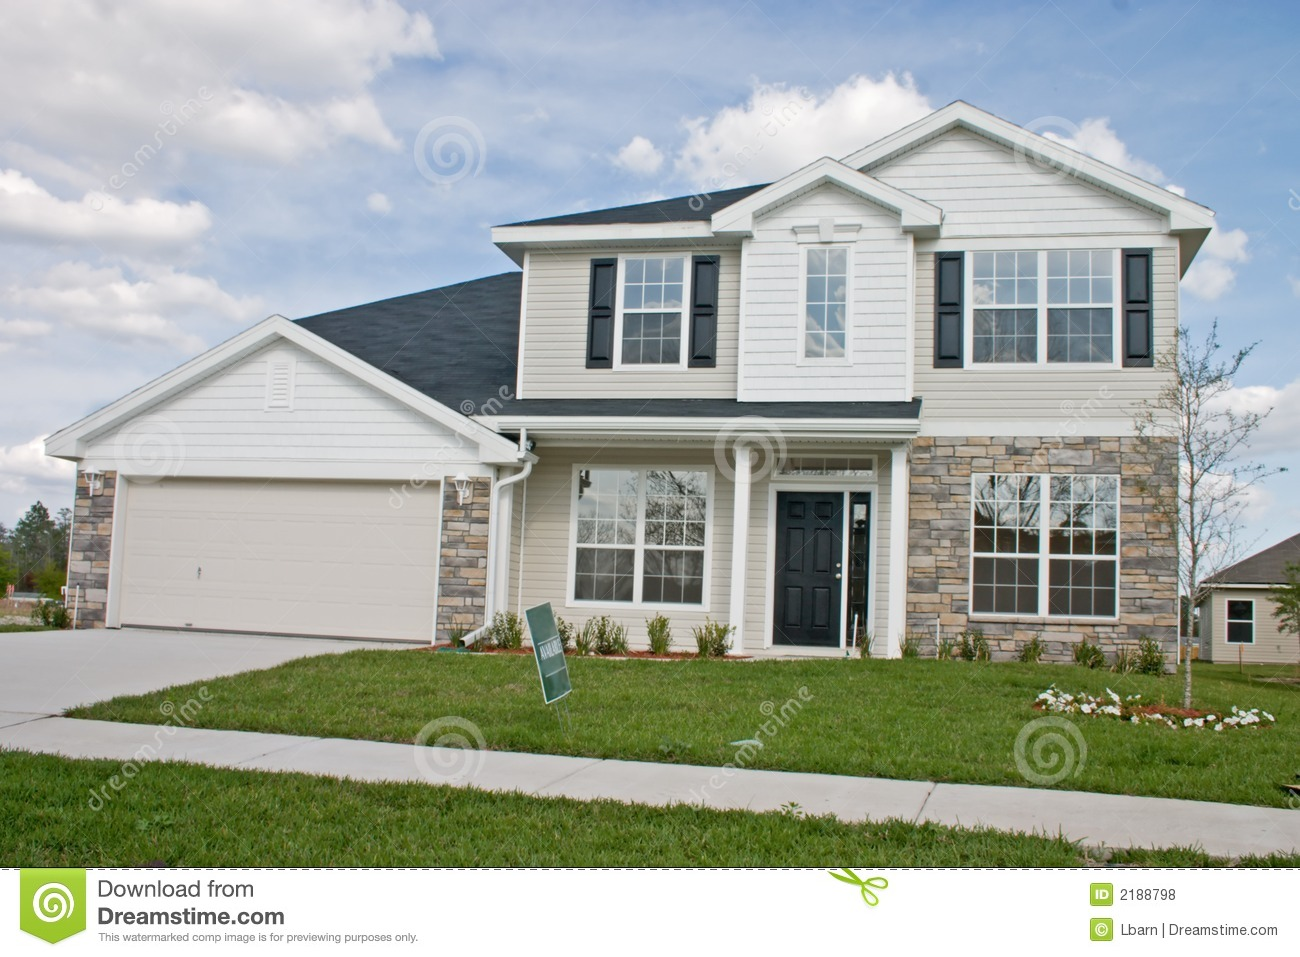 Stone accents new home 11 royalty free stock photos for Houses with stone accents